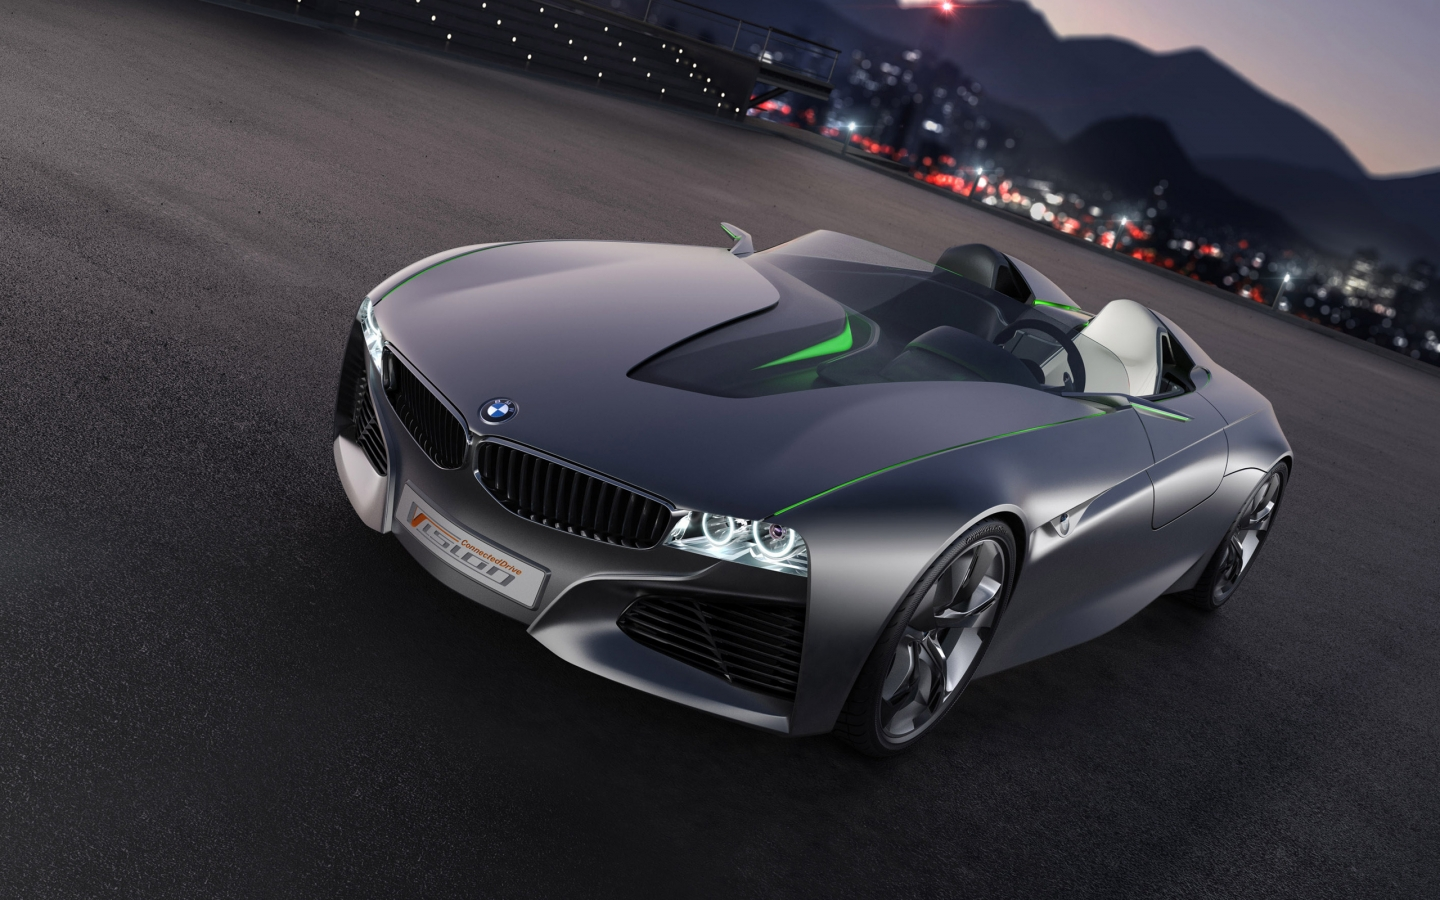 BMW Vision Connected Drive Concept for 1440 x 900 widescreen resolution